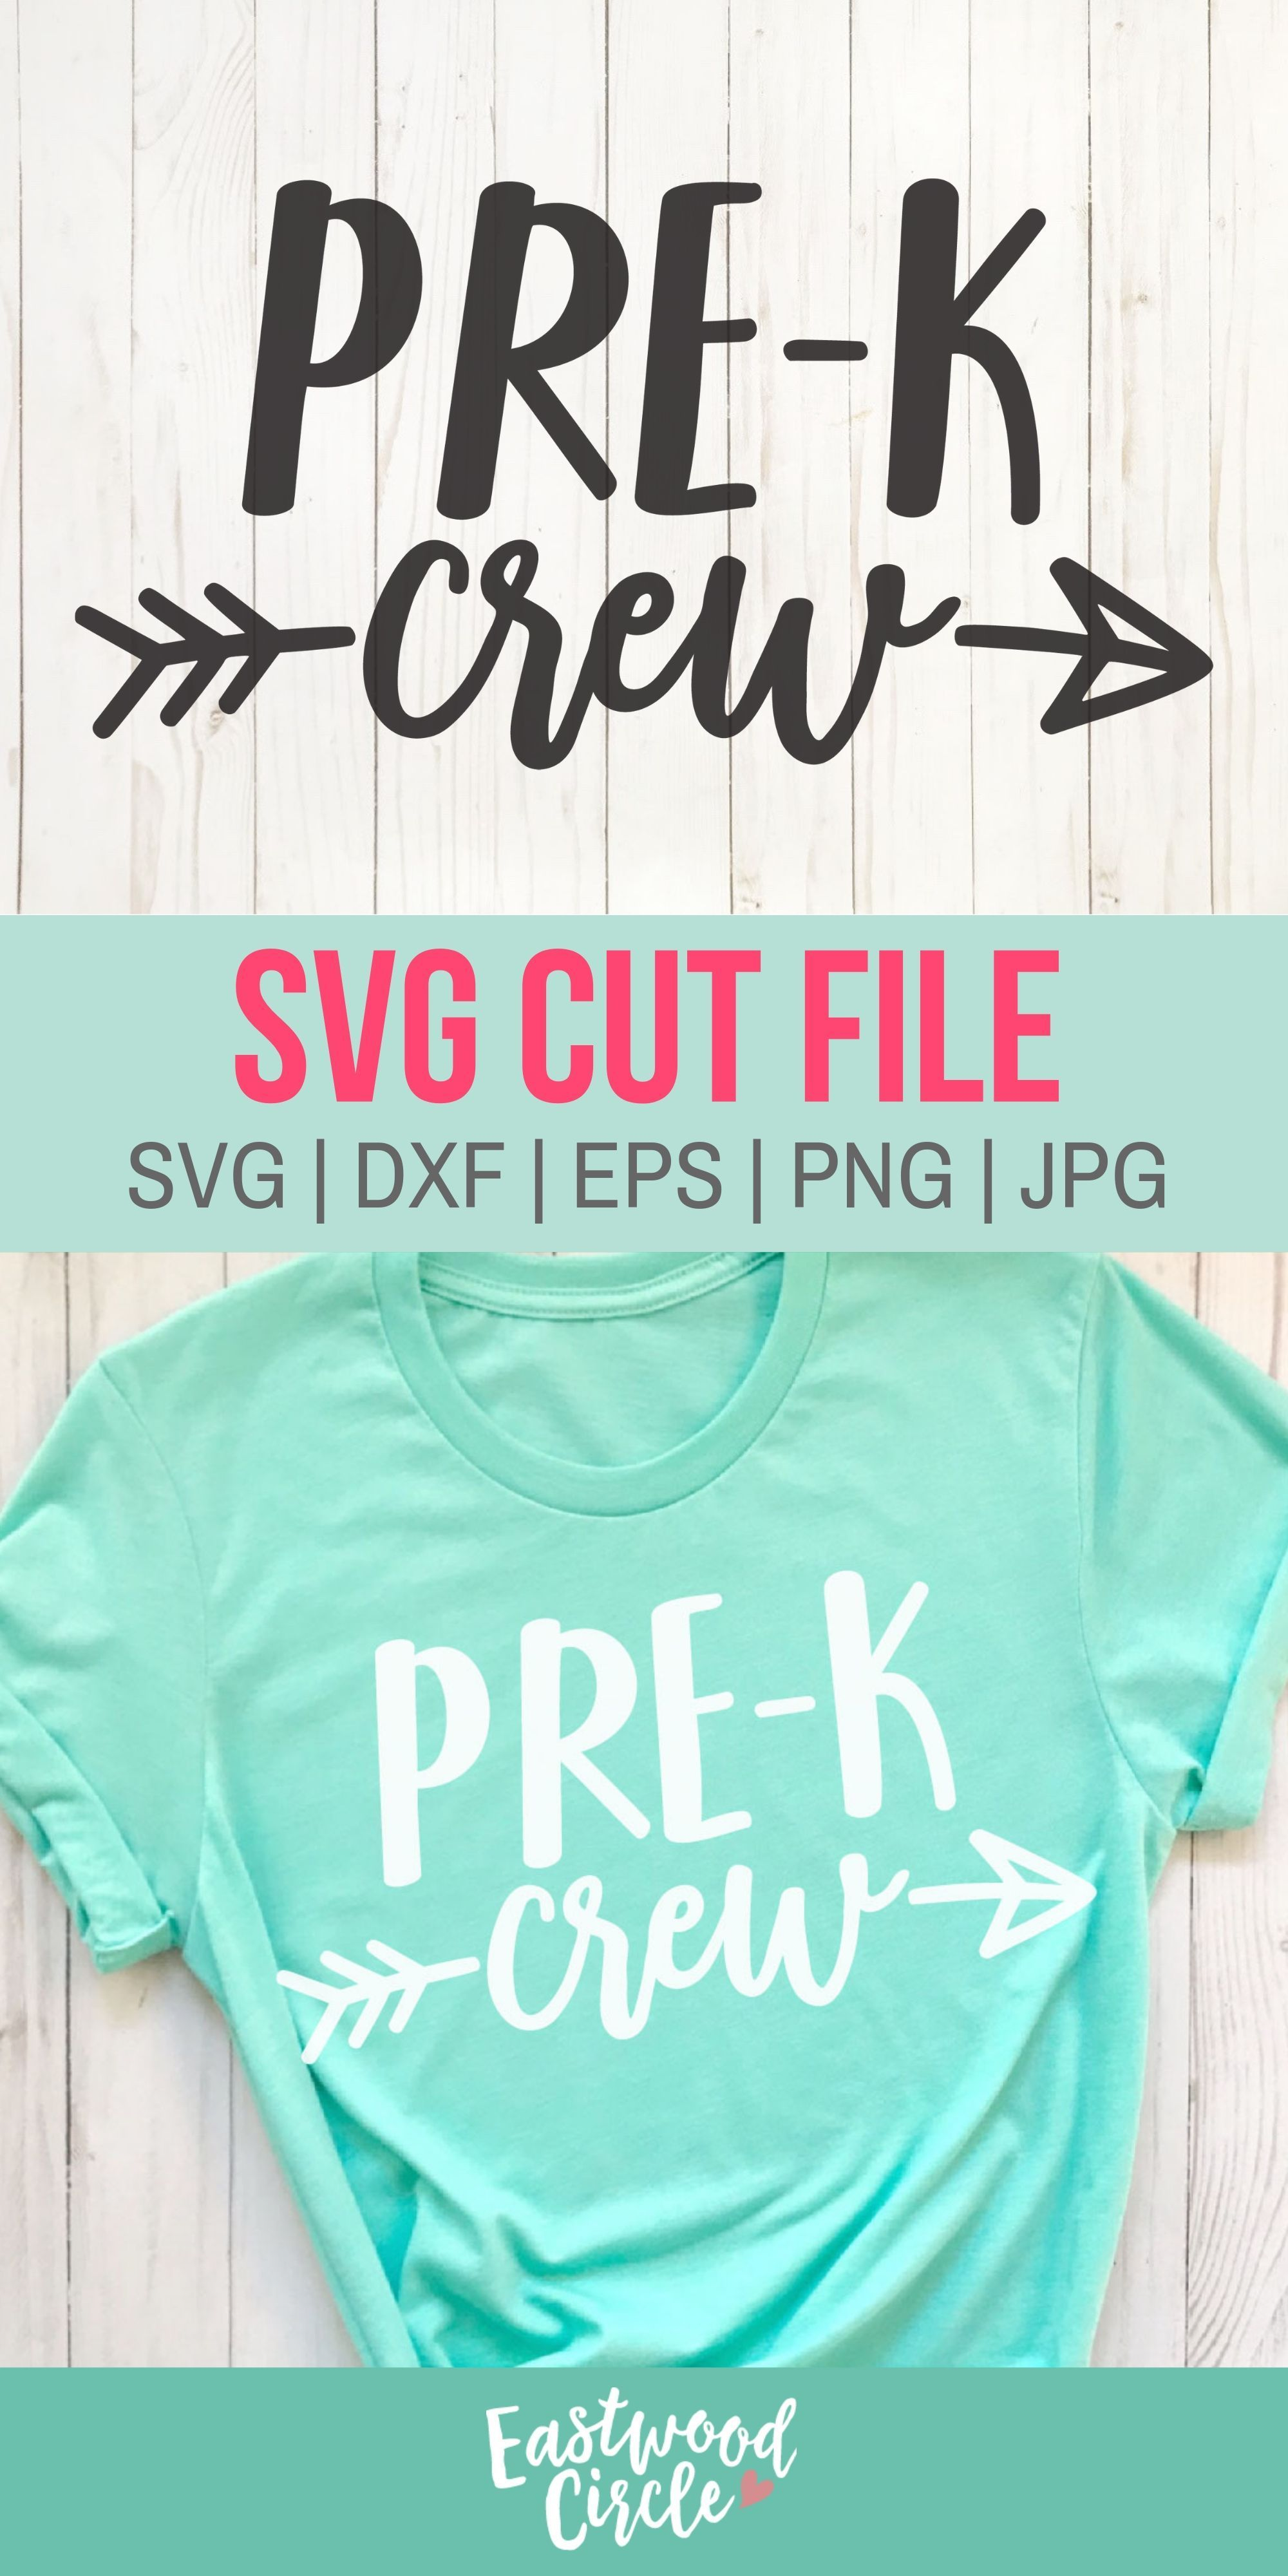 This School Svg File Works Great With The Cricut And Silhouette Cameo For Crafters To Make Diy Projects Such As Shirts Signs Svg Cricut Projects Vinyl Cricut